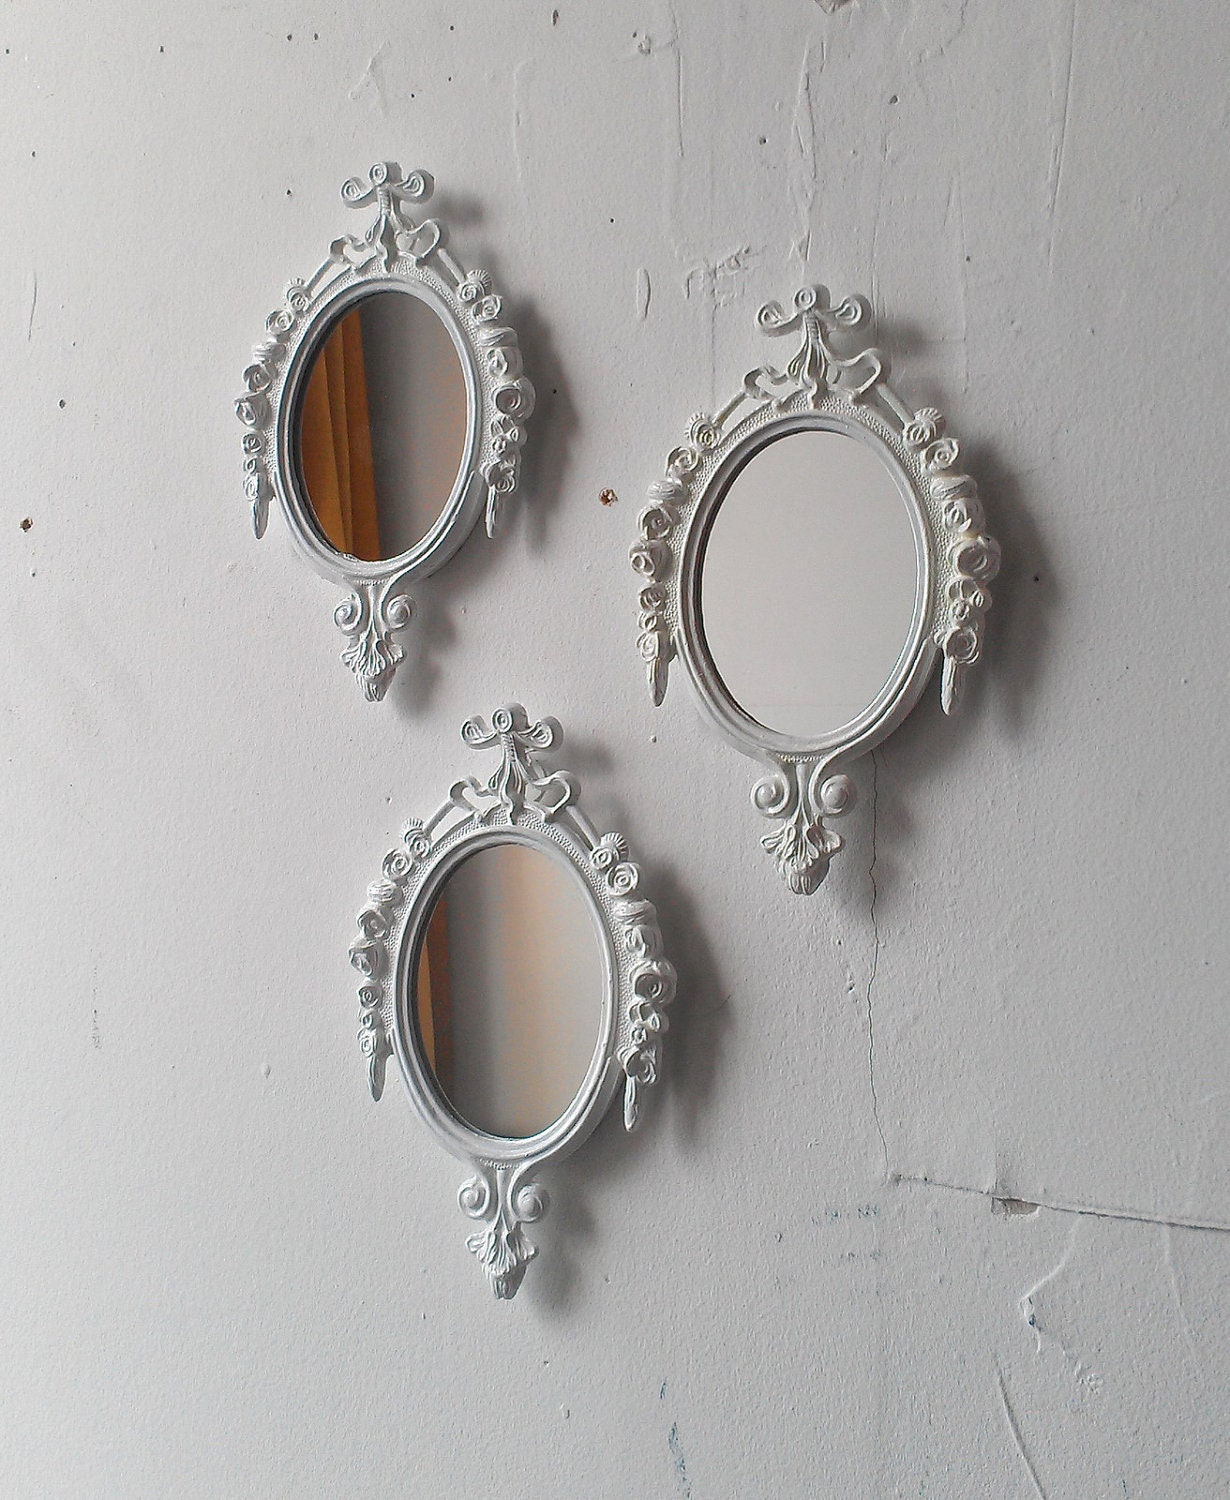 White mirror set small decorative mirrors vintage french for Small decorative mirrors